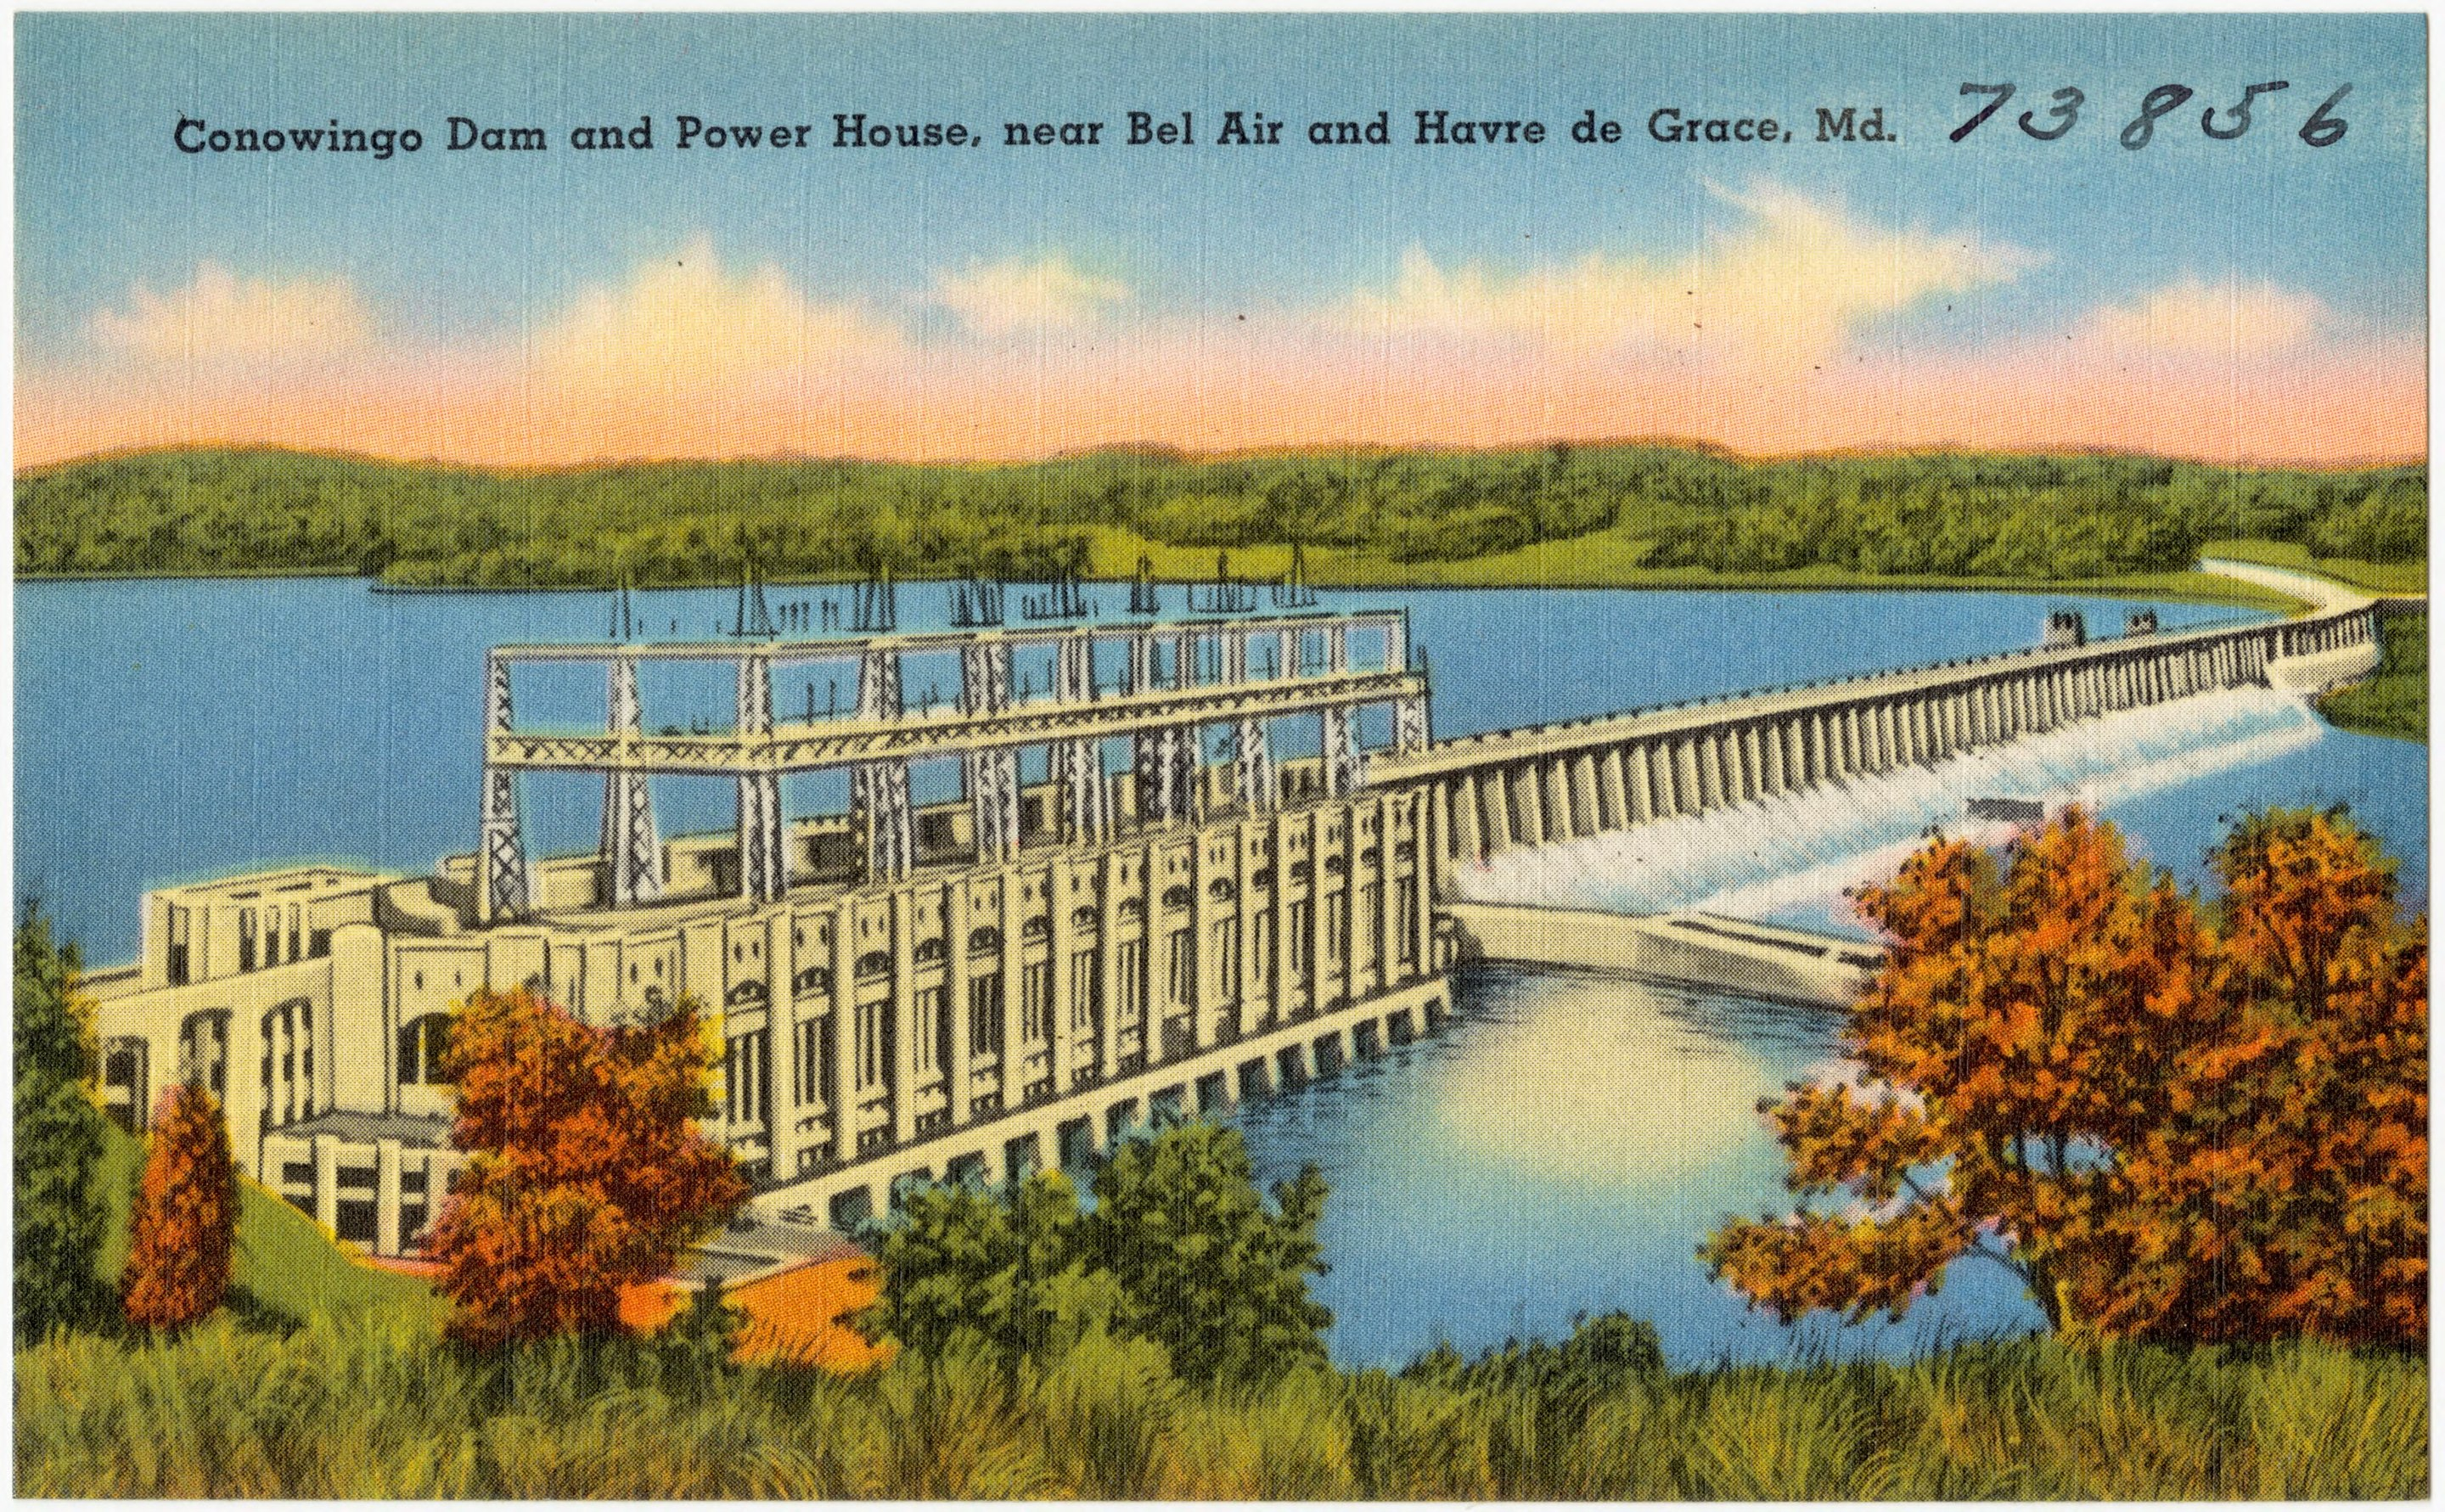 2880px-Conowingo_Dam_and_Power_House,_near_Bel_Air_and_Havre_de_Grace,_Md_(73856)